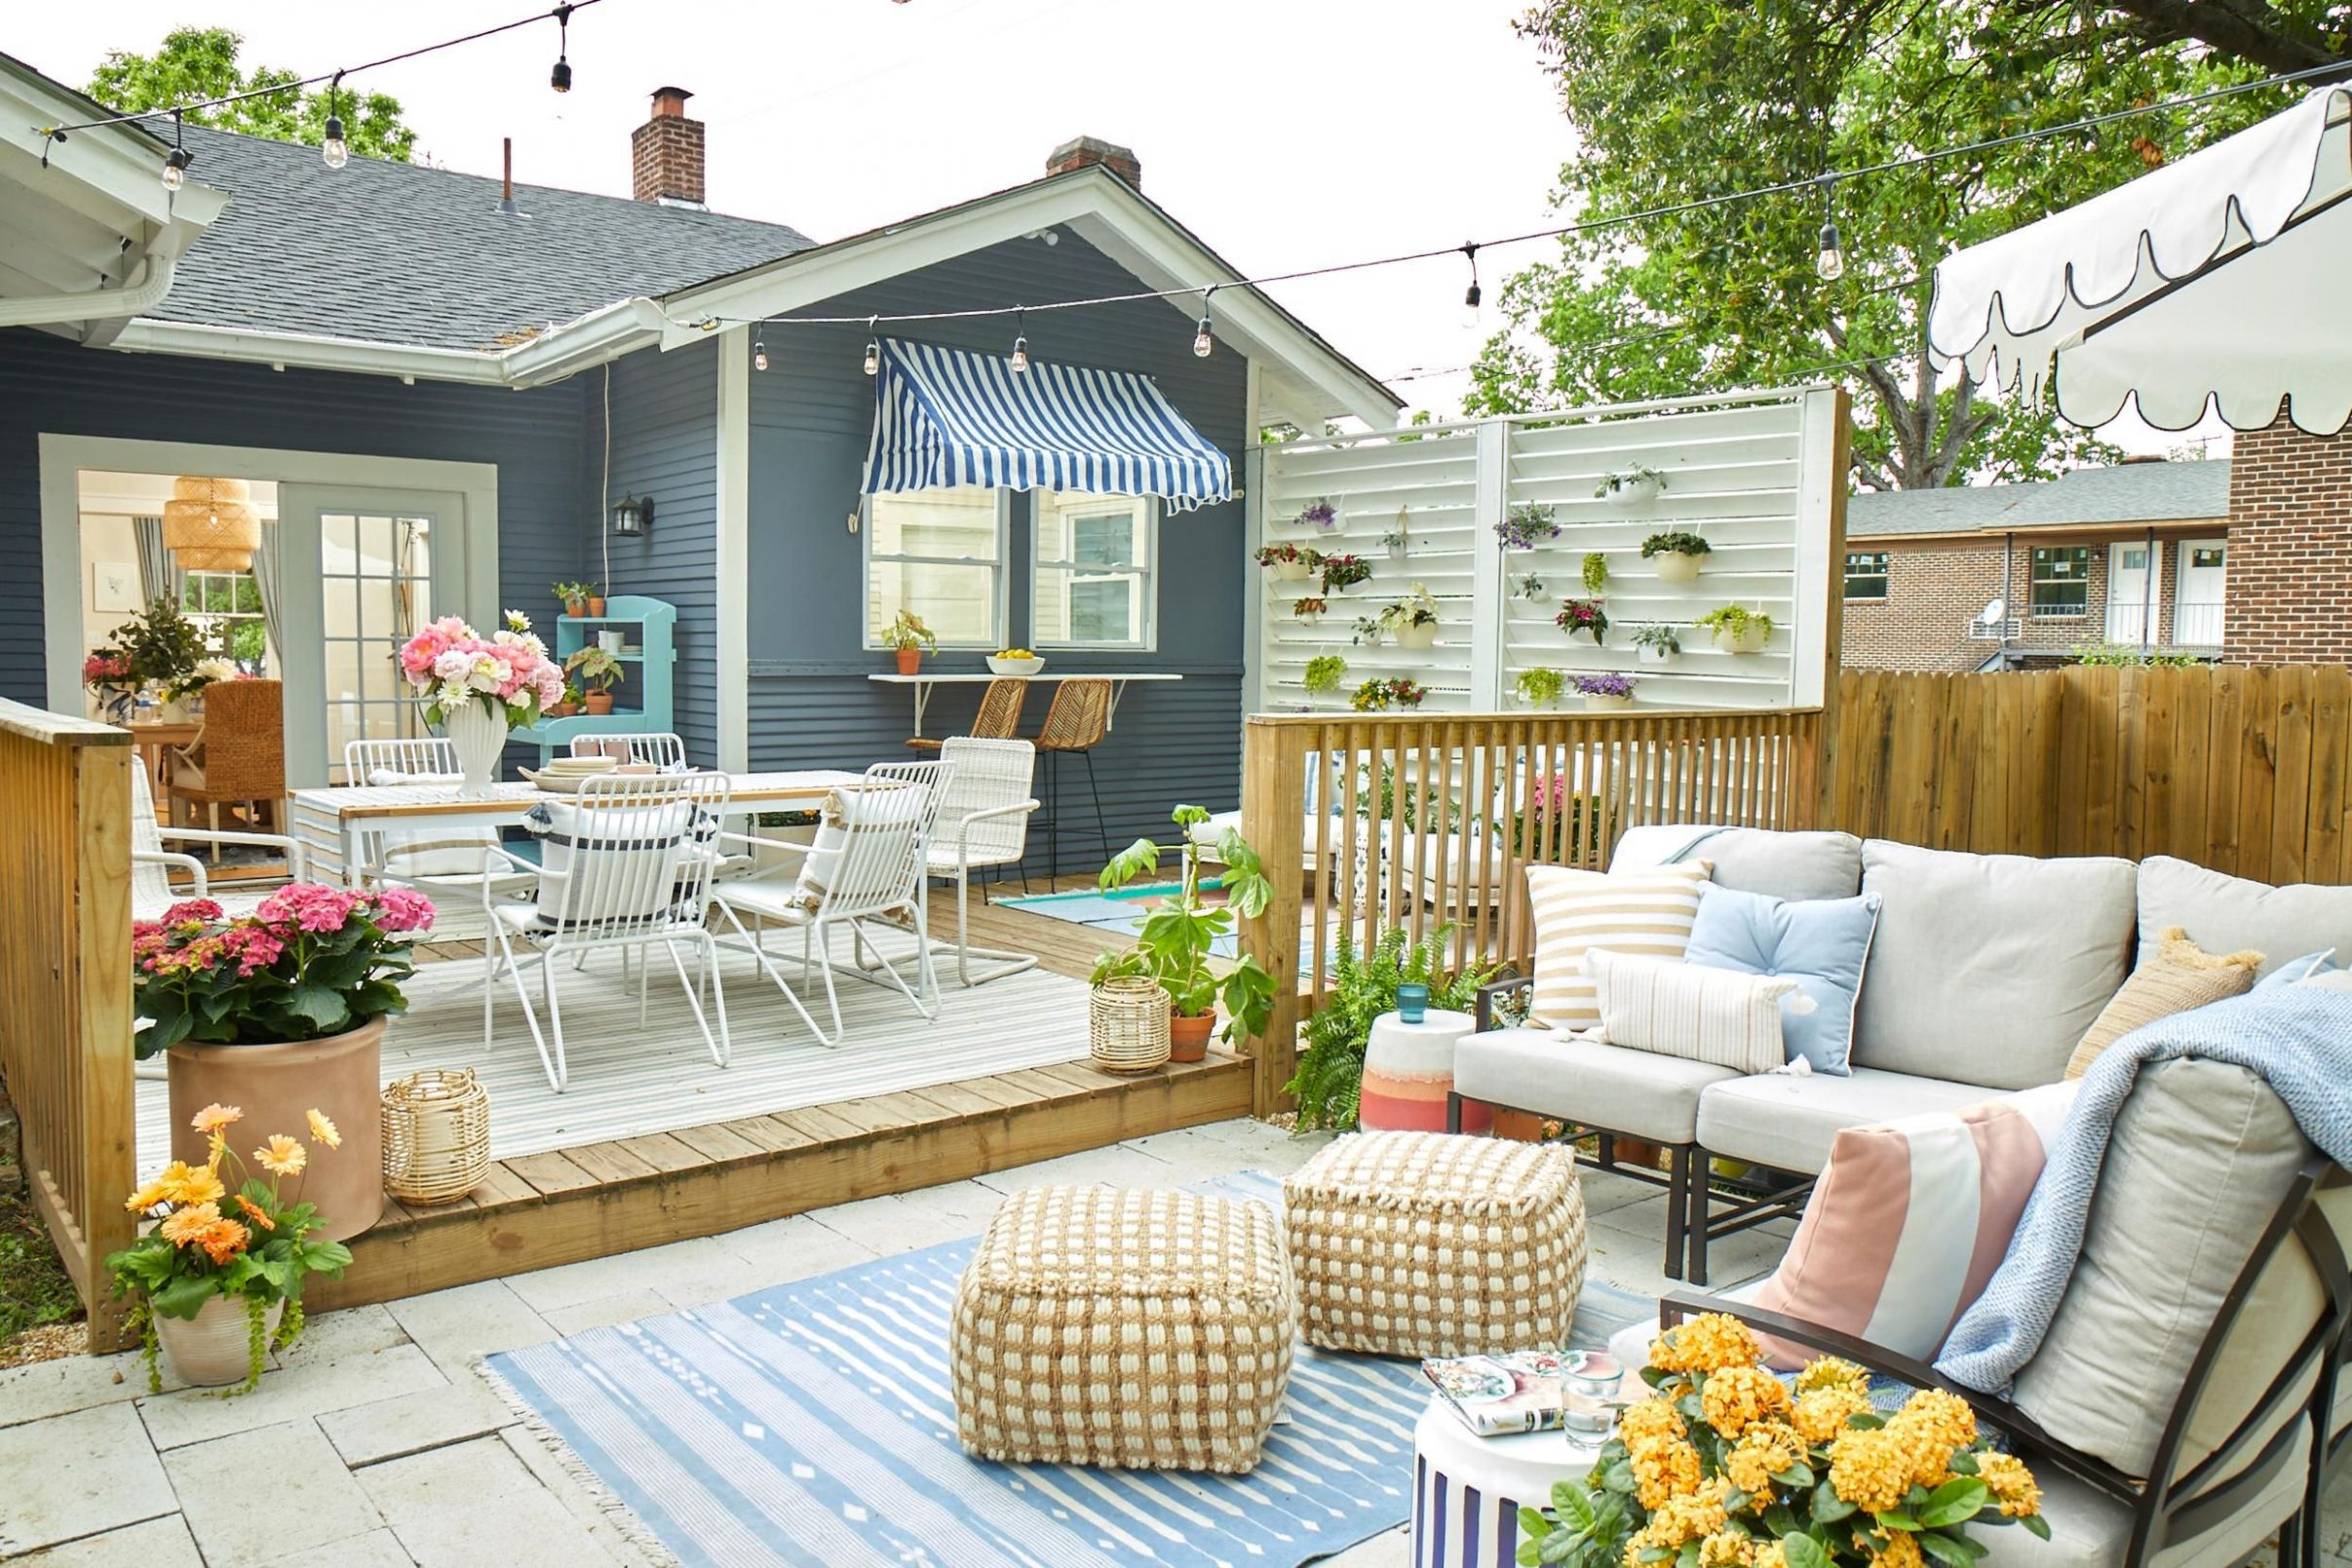 11 Best Patio and Porch Design Ideas - Decorating Your Outdoor Space - balcony ideas at home